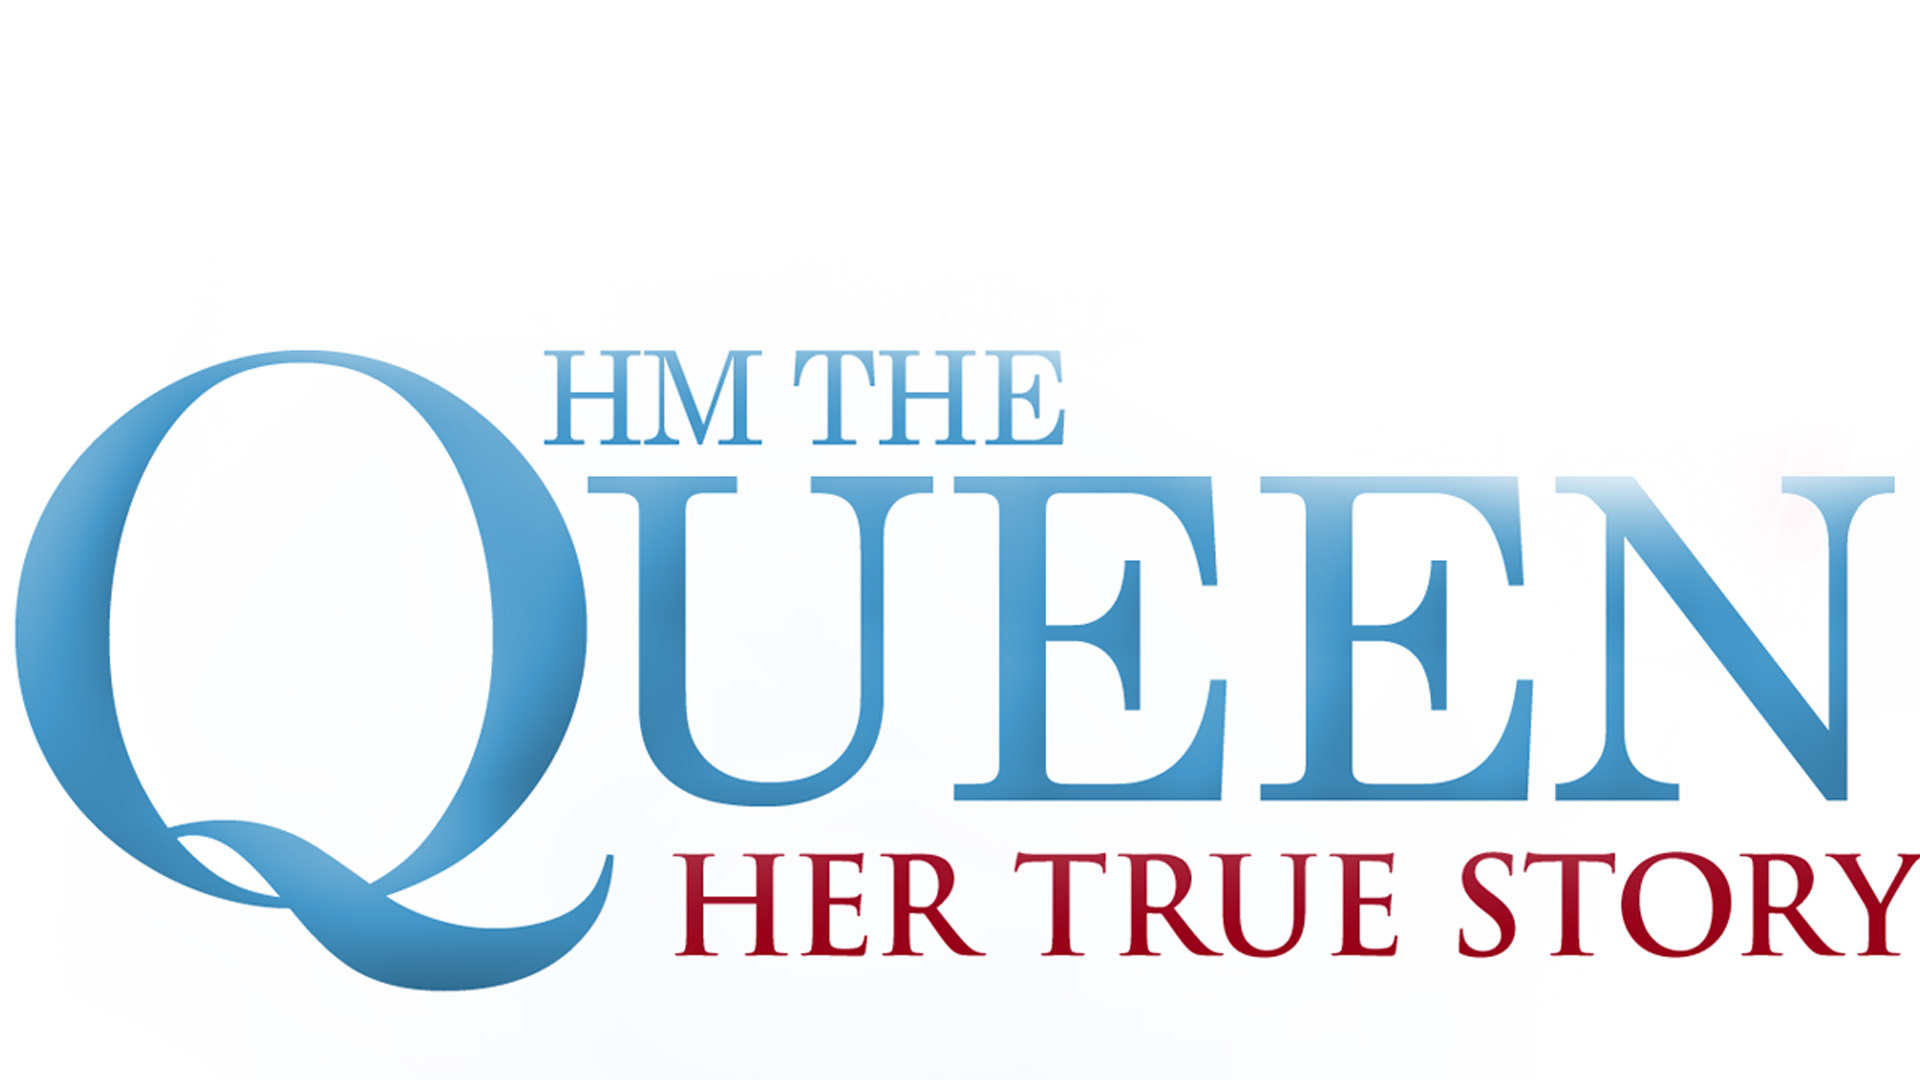 H.M. The Queen: Her True Story